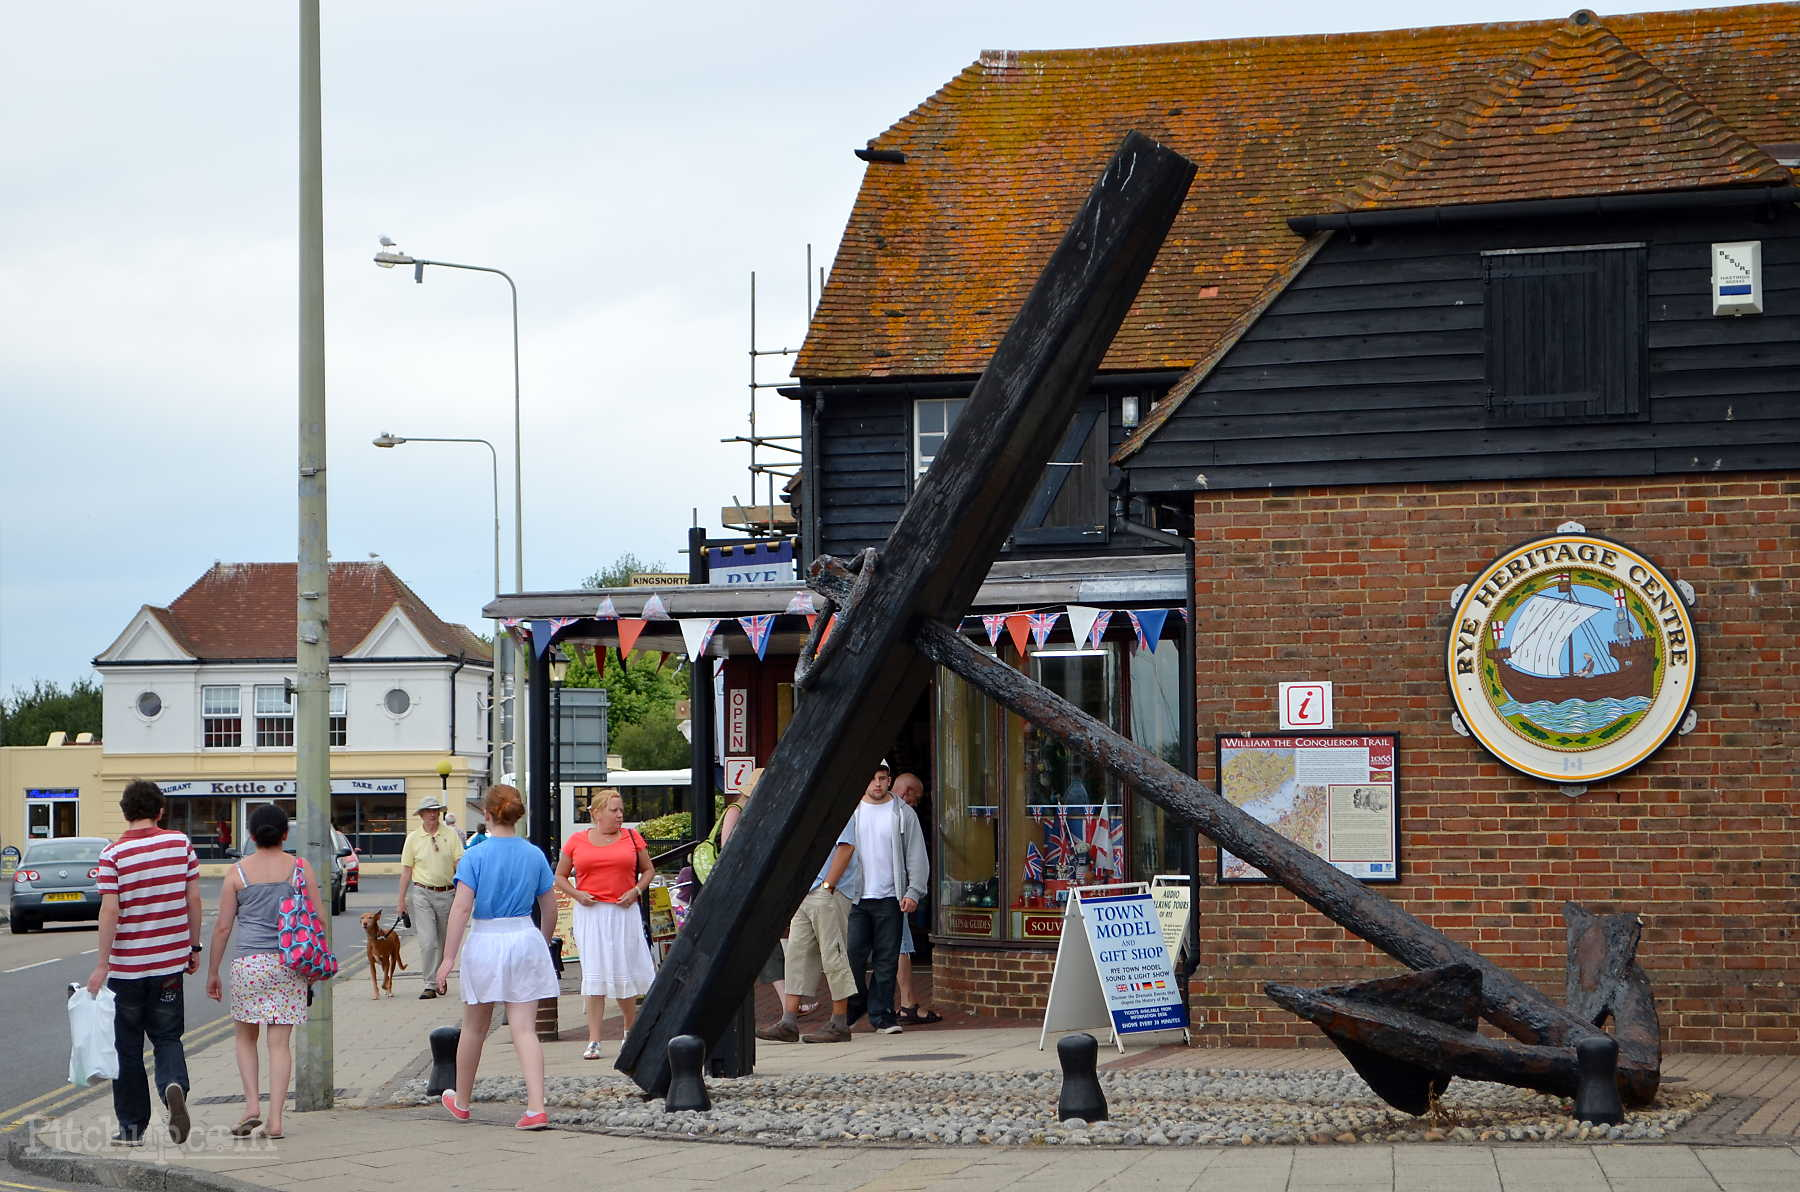 rye-harbour-holiday-park-8